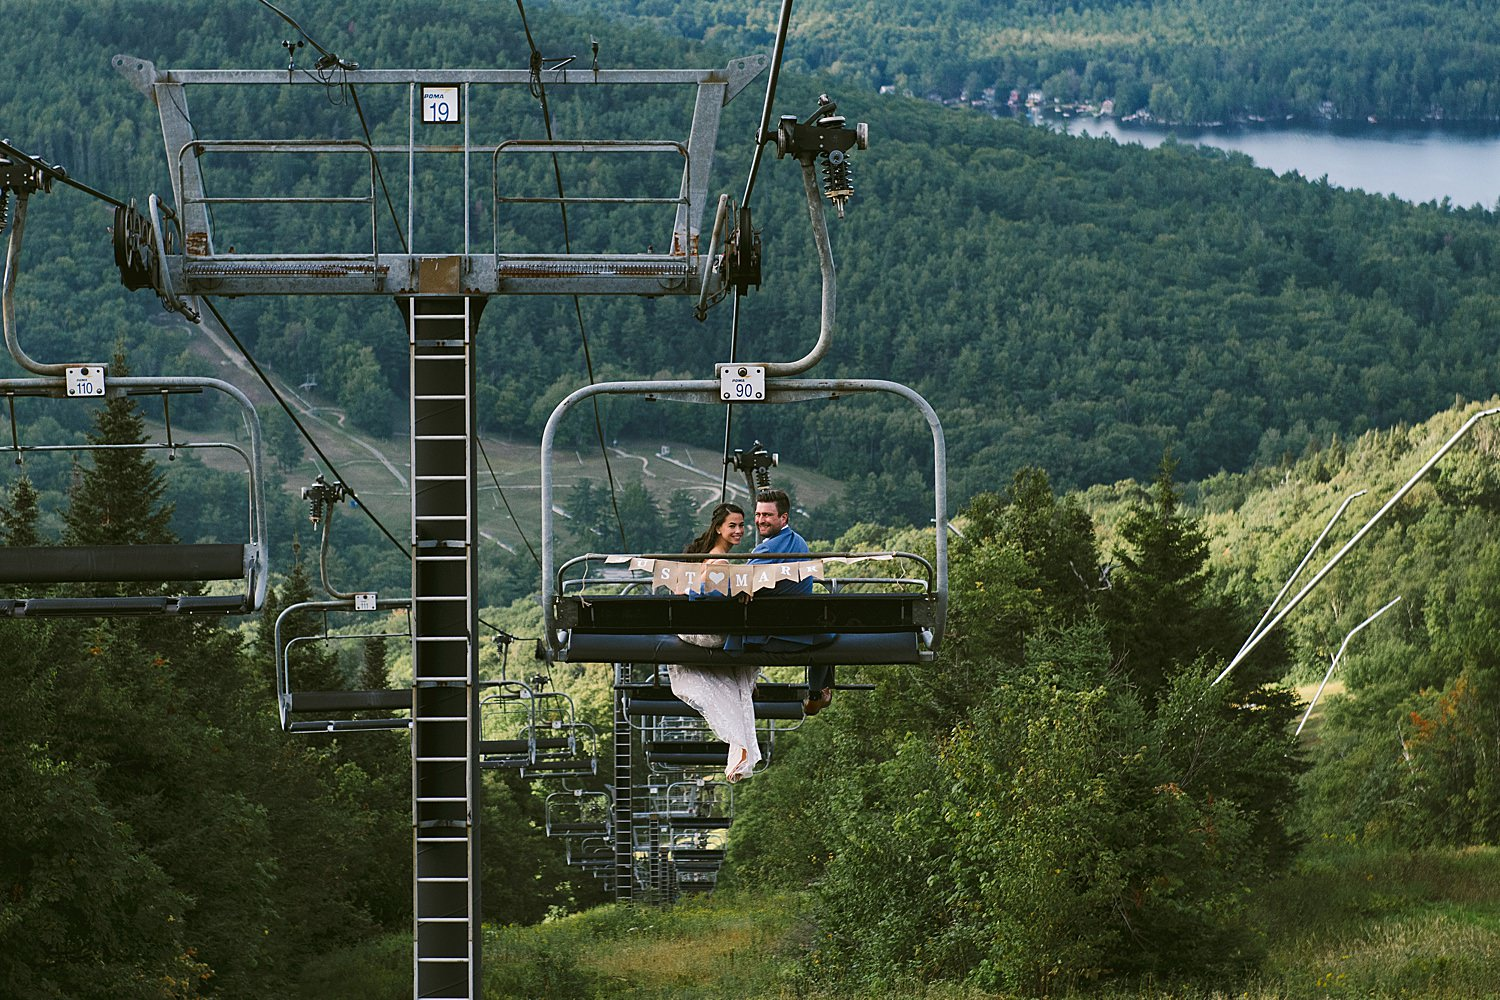 Bride and groom on the chair lift with view of the lake below